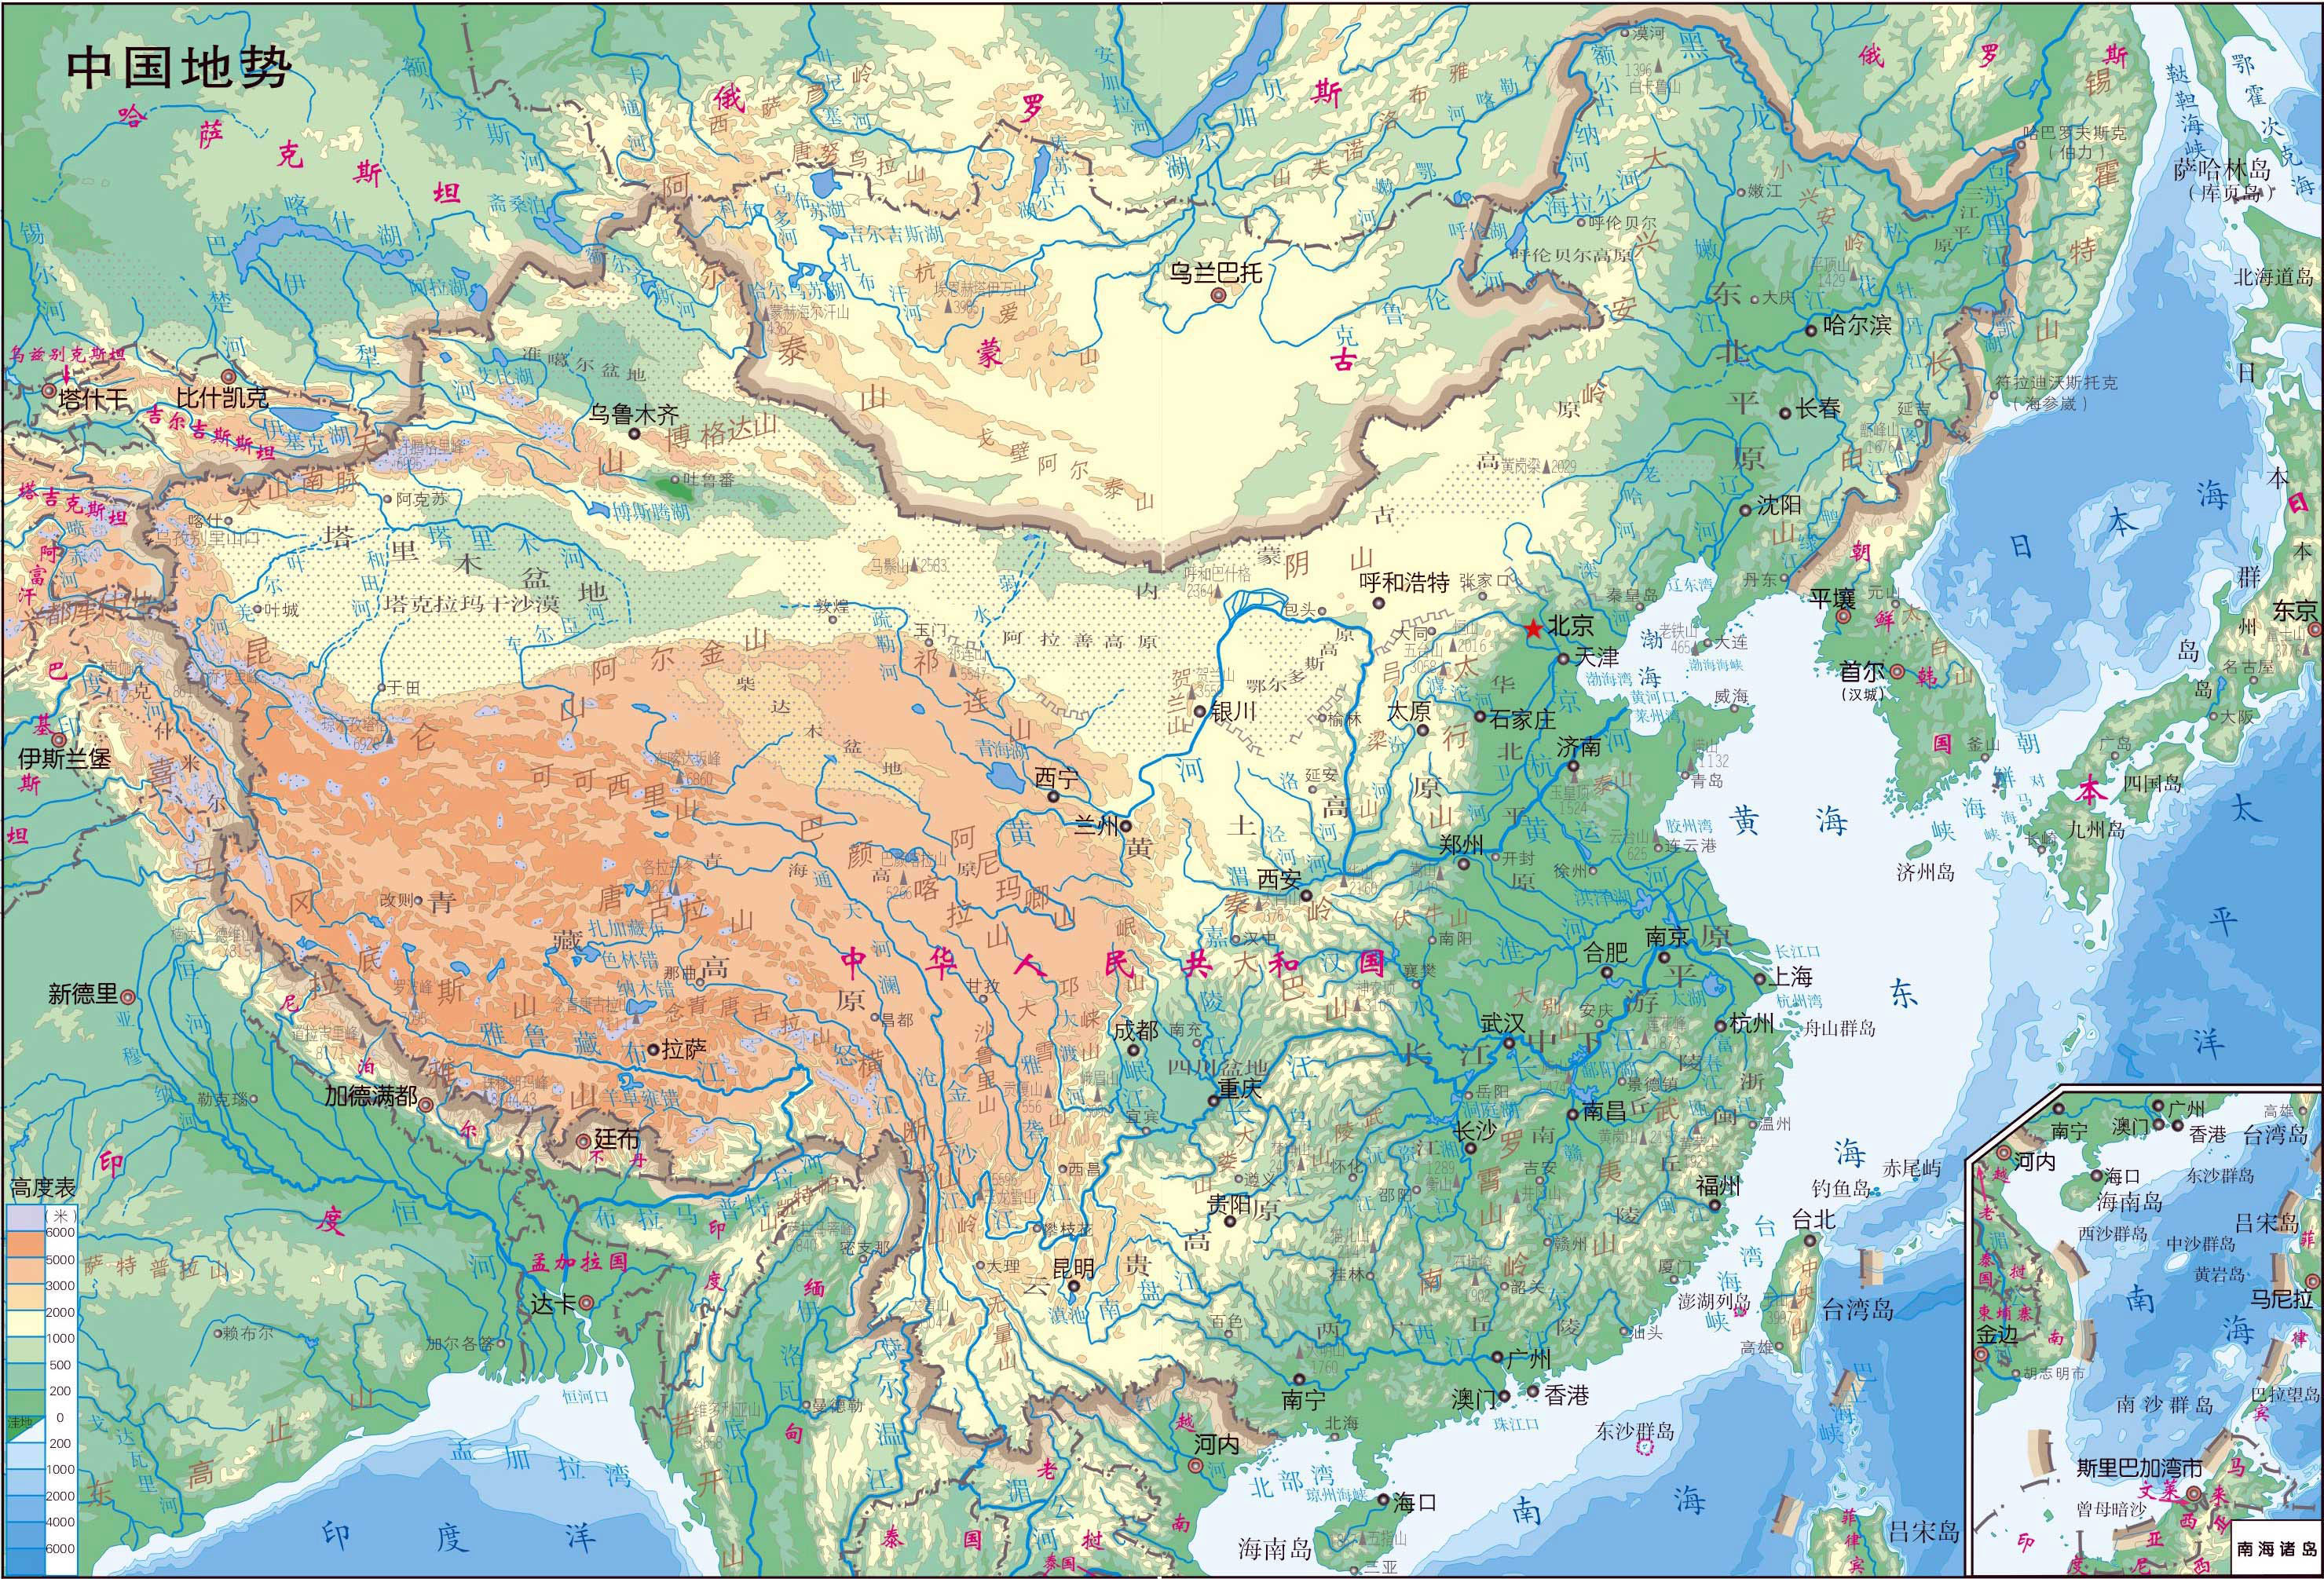 large_detailed_physical_map_of_map_of_China_in_Chinese.jpg